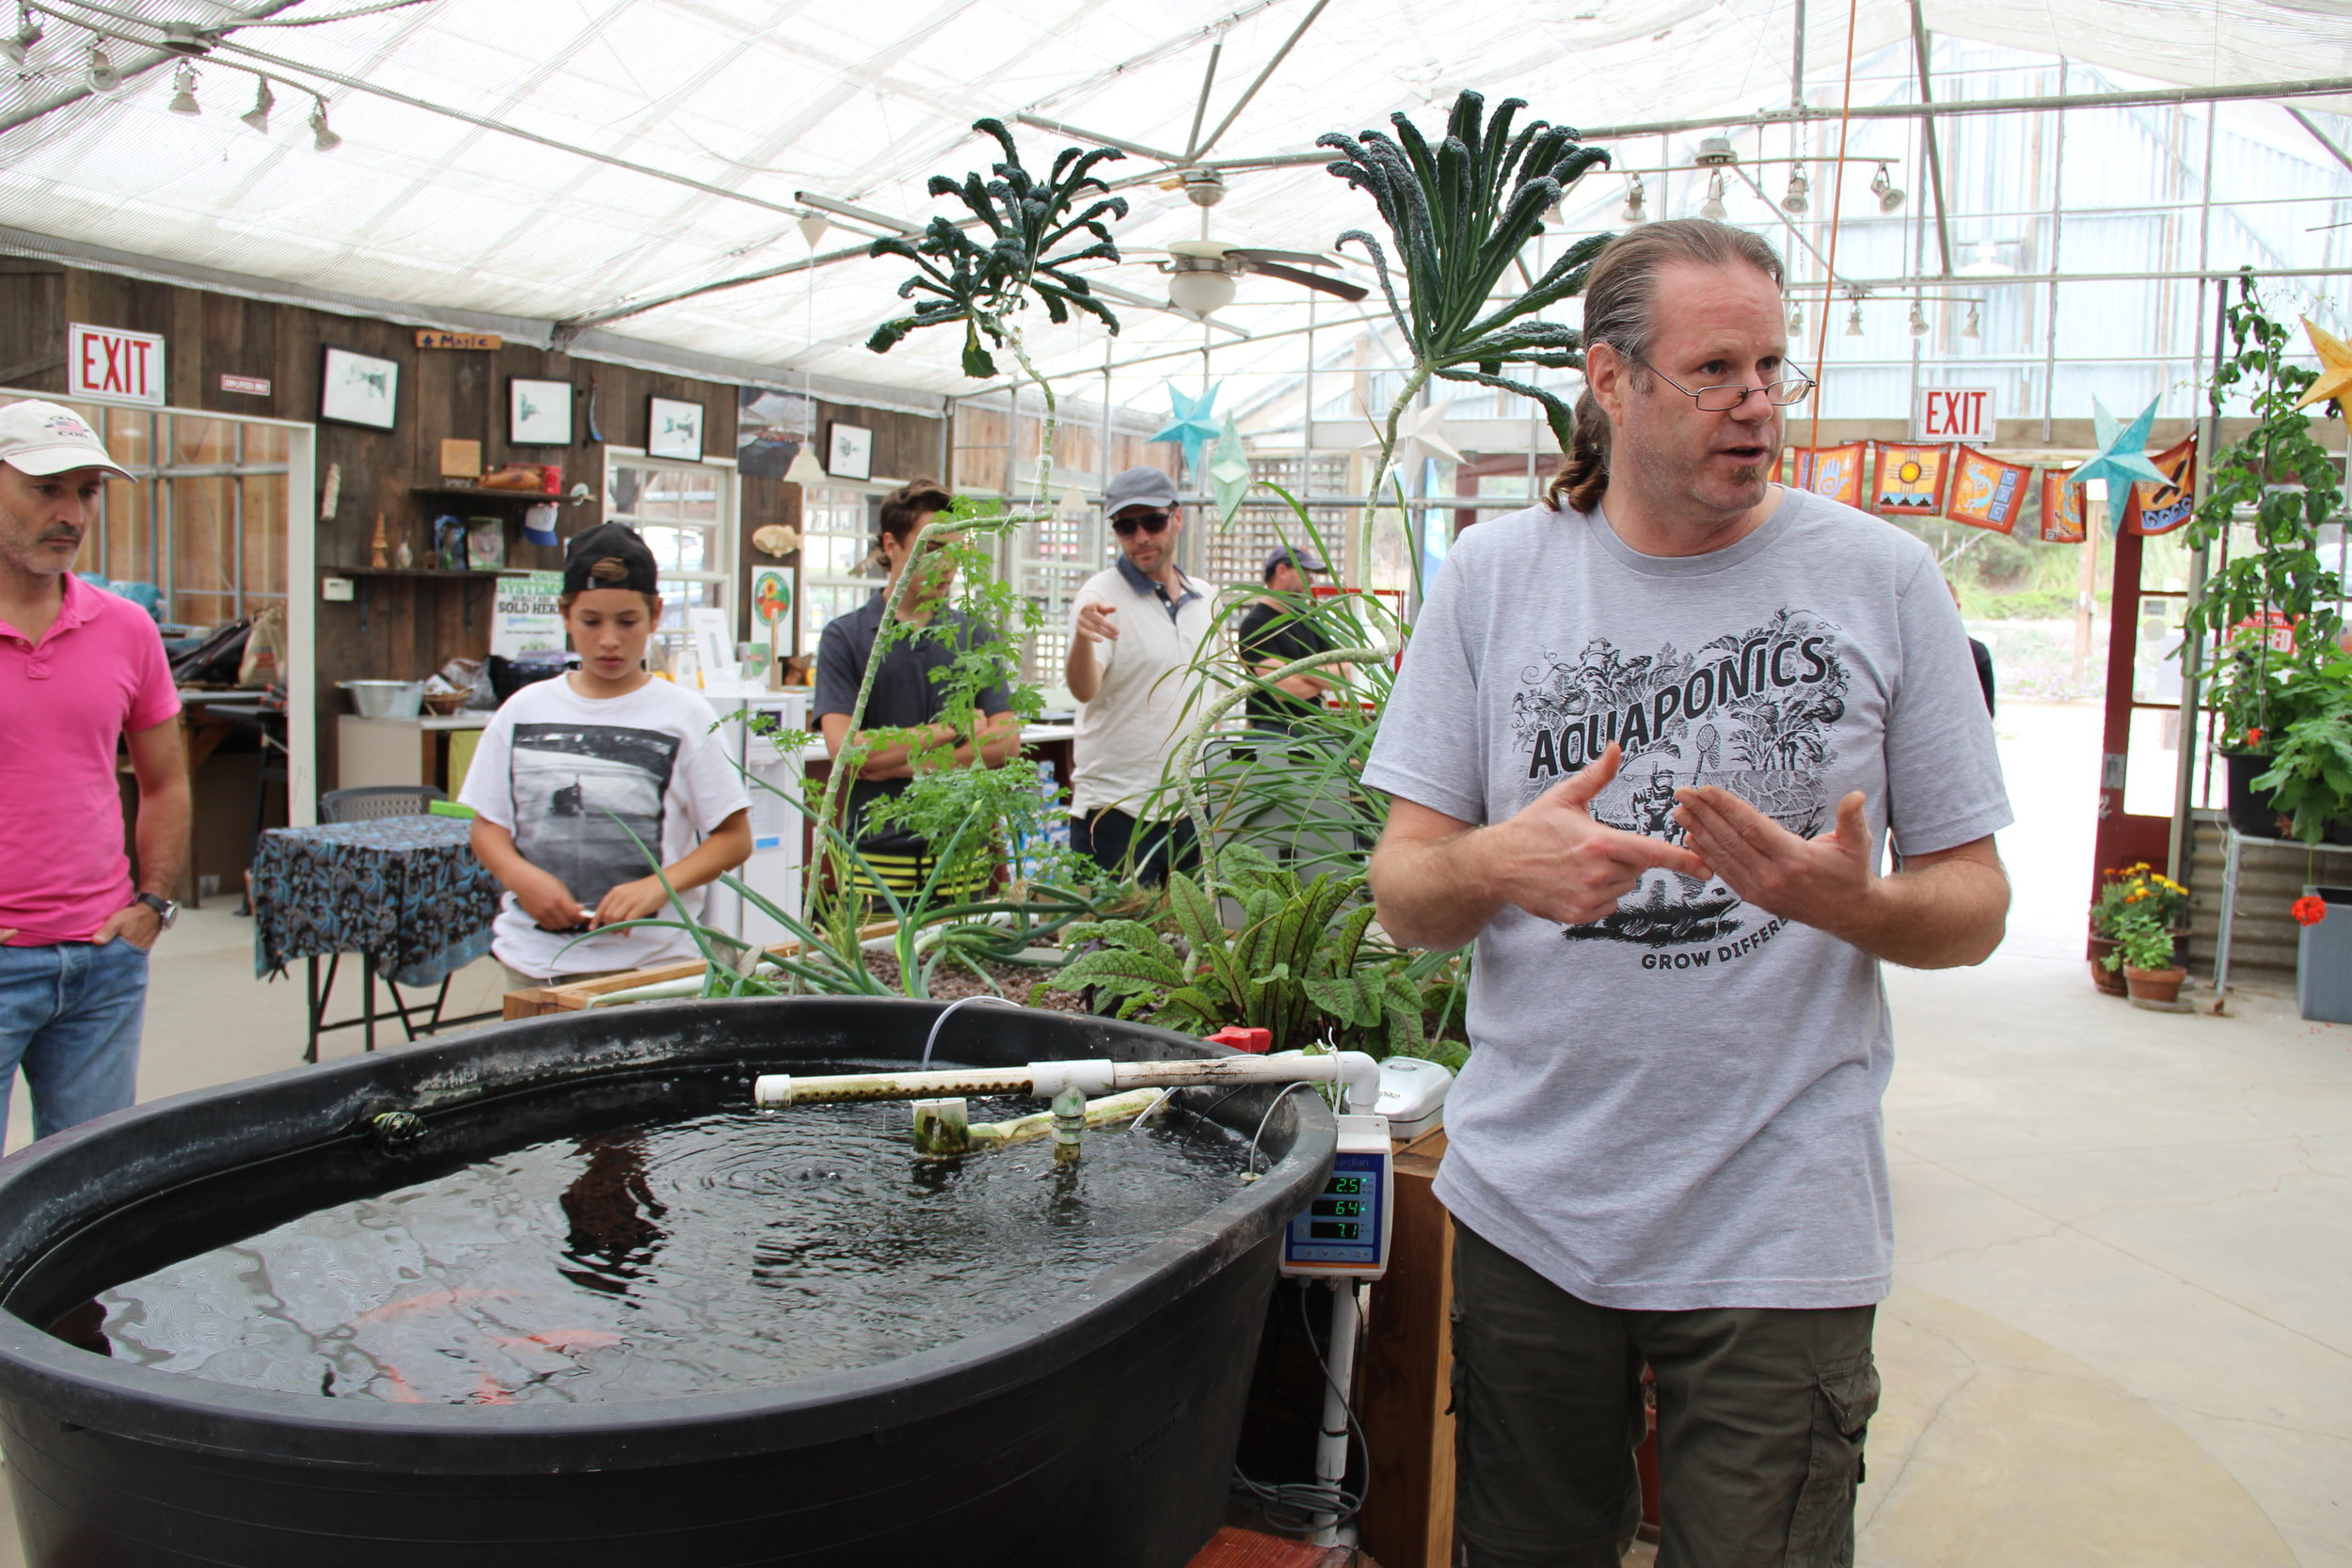 Ken Armstrong, founder of Ouroboros Farms, demonstrating a home aquaponic system.